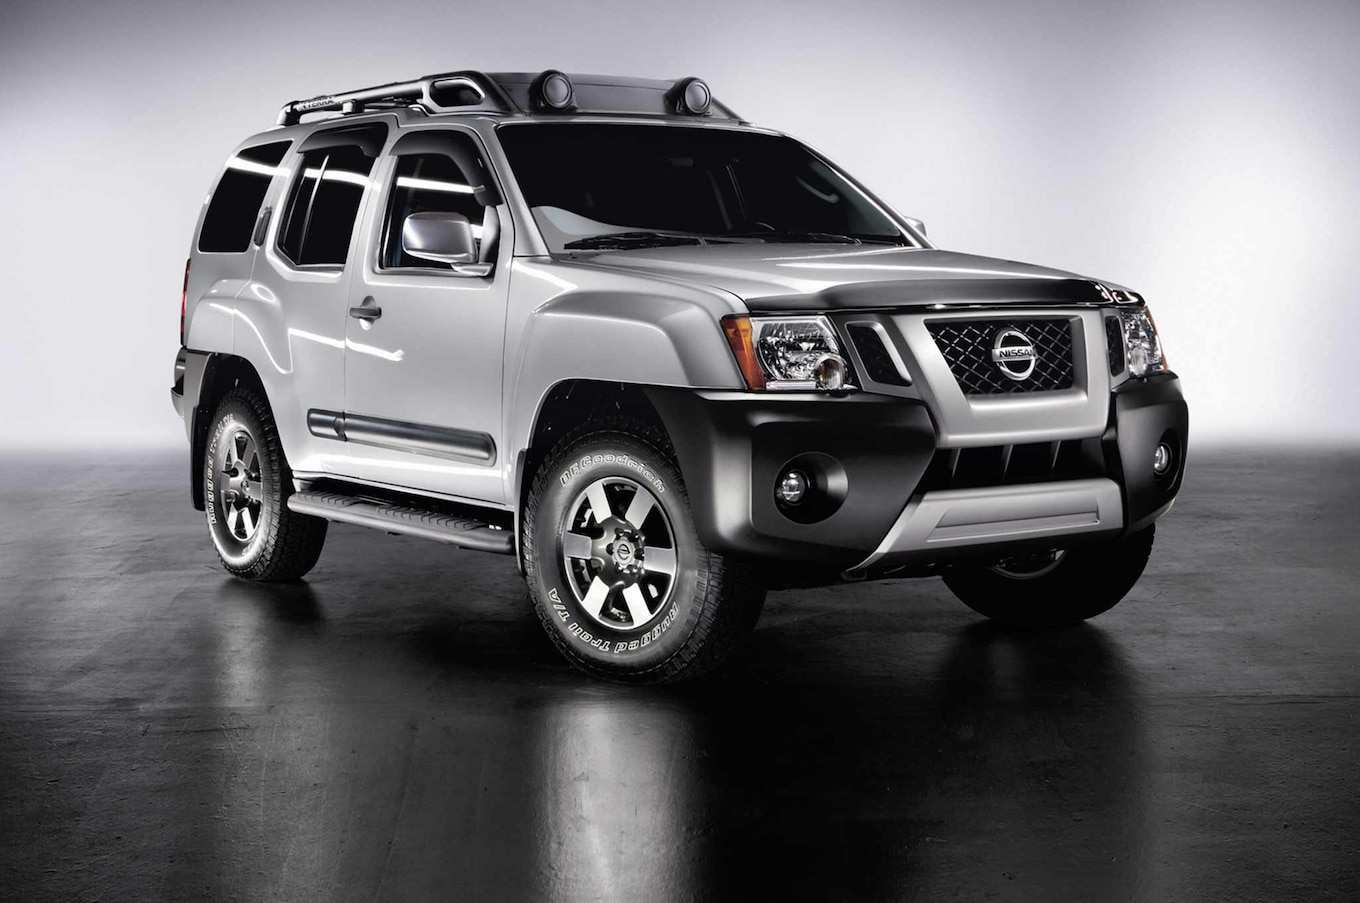 97 Great Xterra Nissan 2020 Release Date with Xterra Nissan 2020